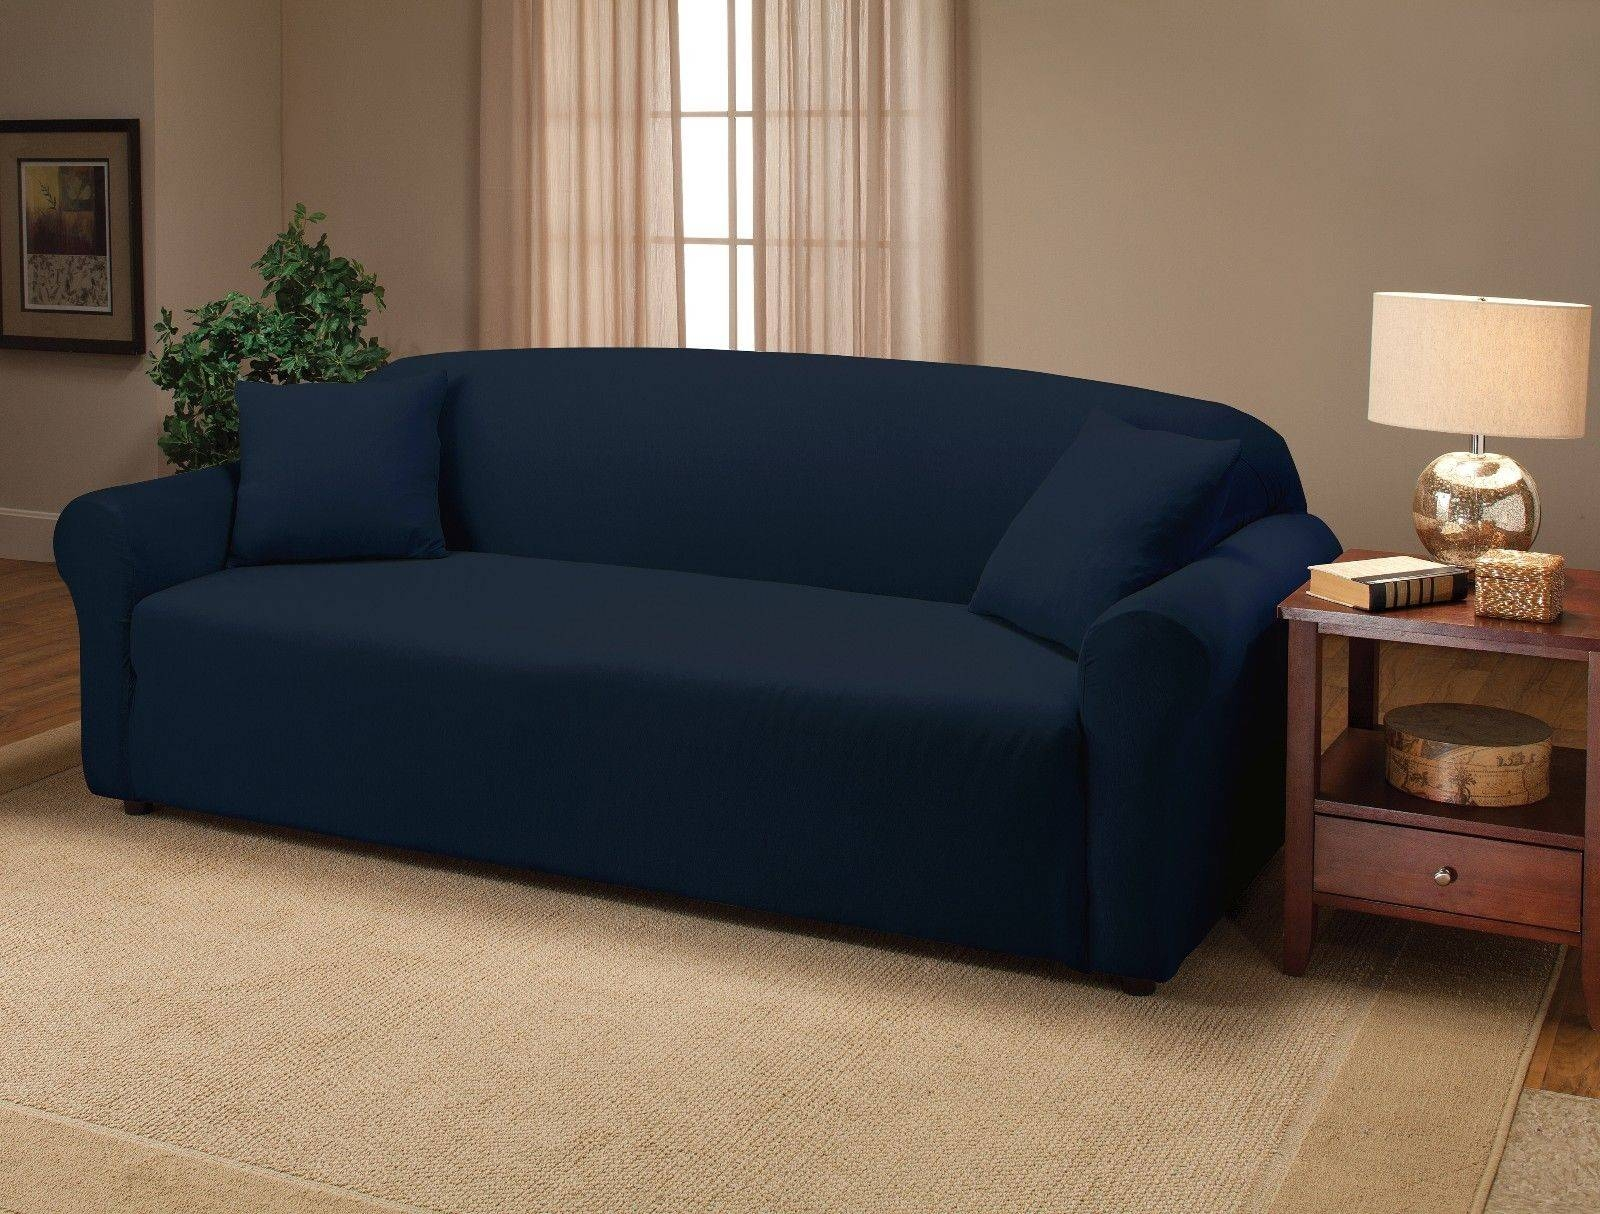 Navy Blue Jersey Couch Stretch Slipcover, Furniture Covers, Chair with Black Slipcovers For Sofas (Image 22 of 30)